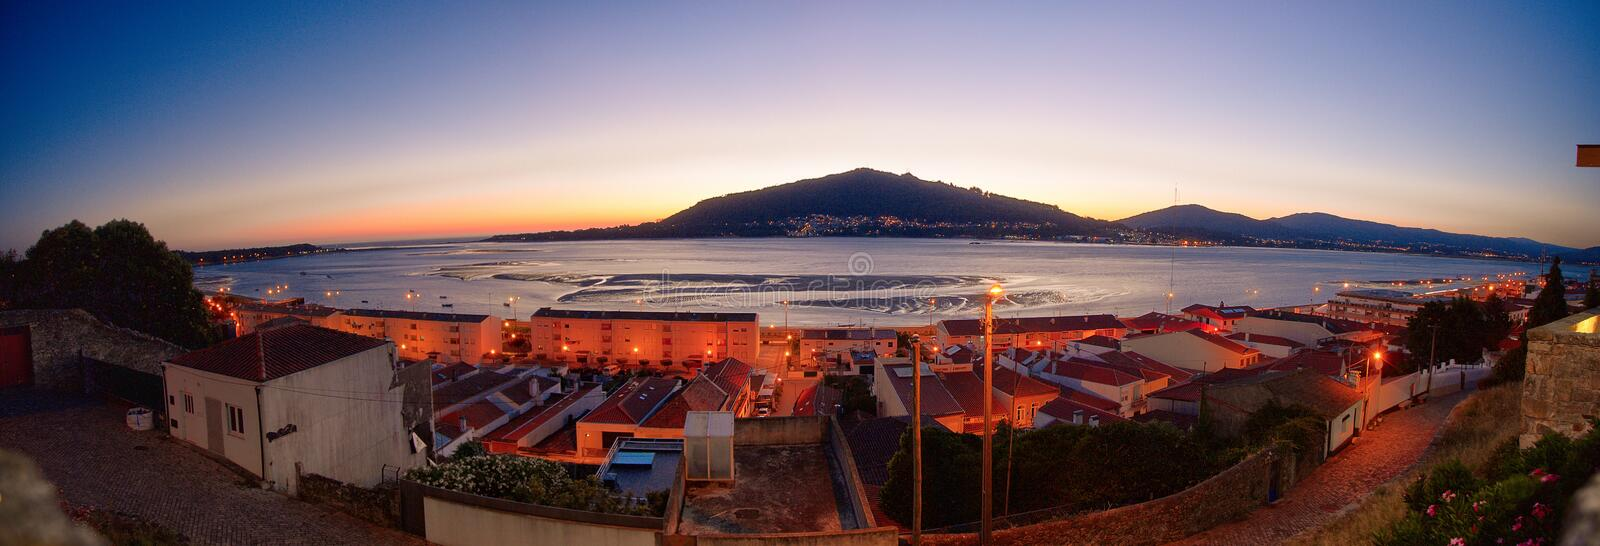 Caminha town and Minho river`s mouth stock image